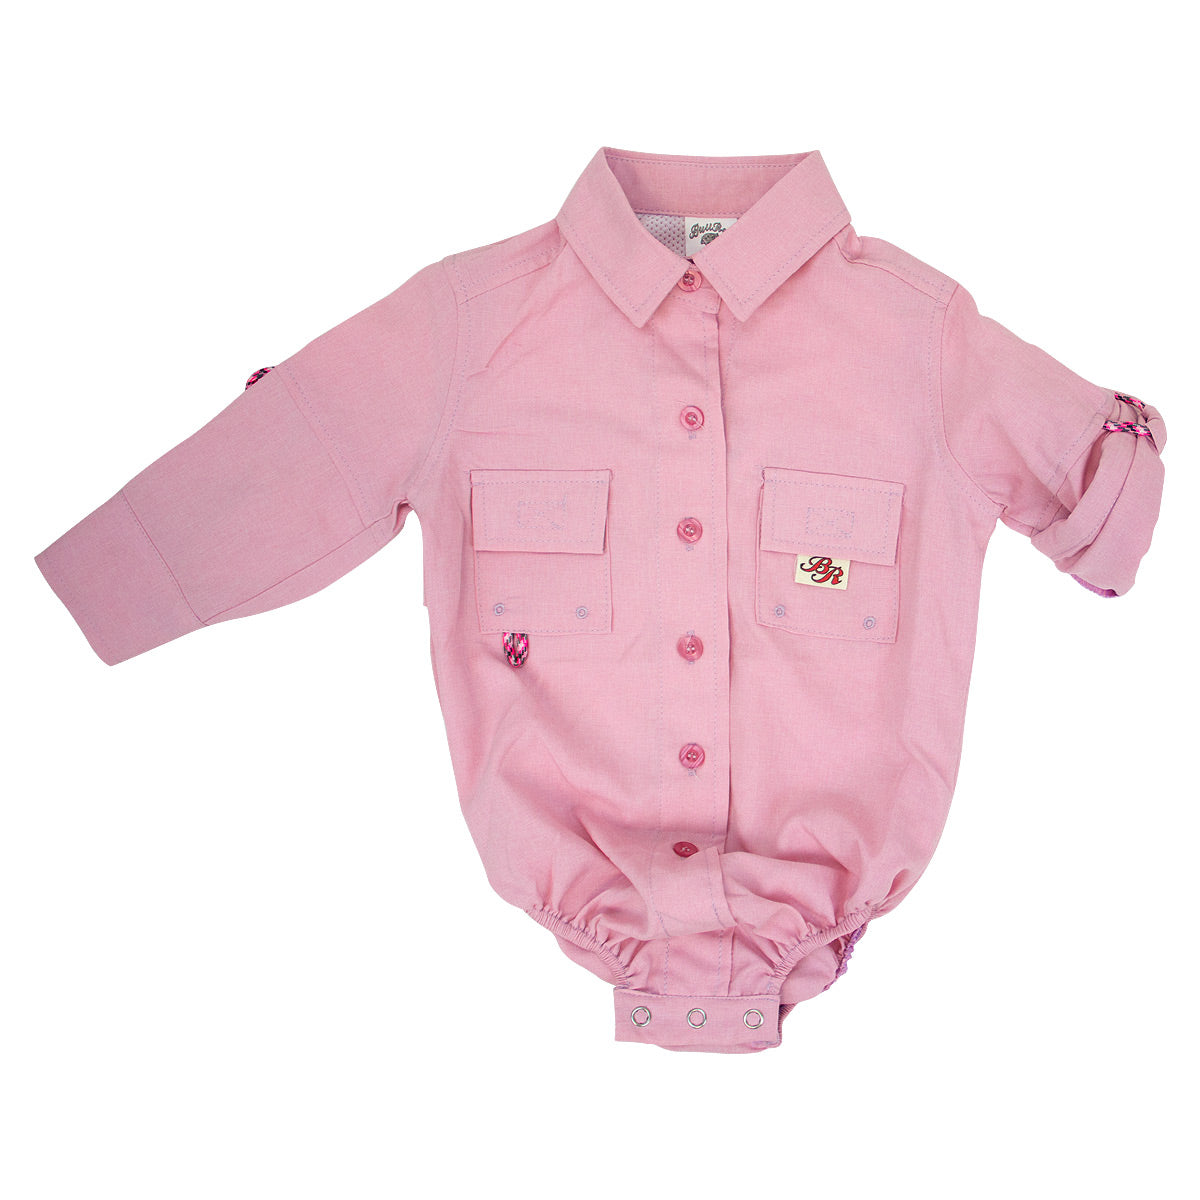 Infant Girl One Piece Outfit 3 6 9 Months Can/'t Wear Pink Black Creeper